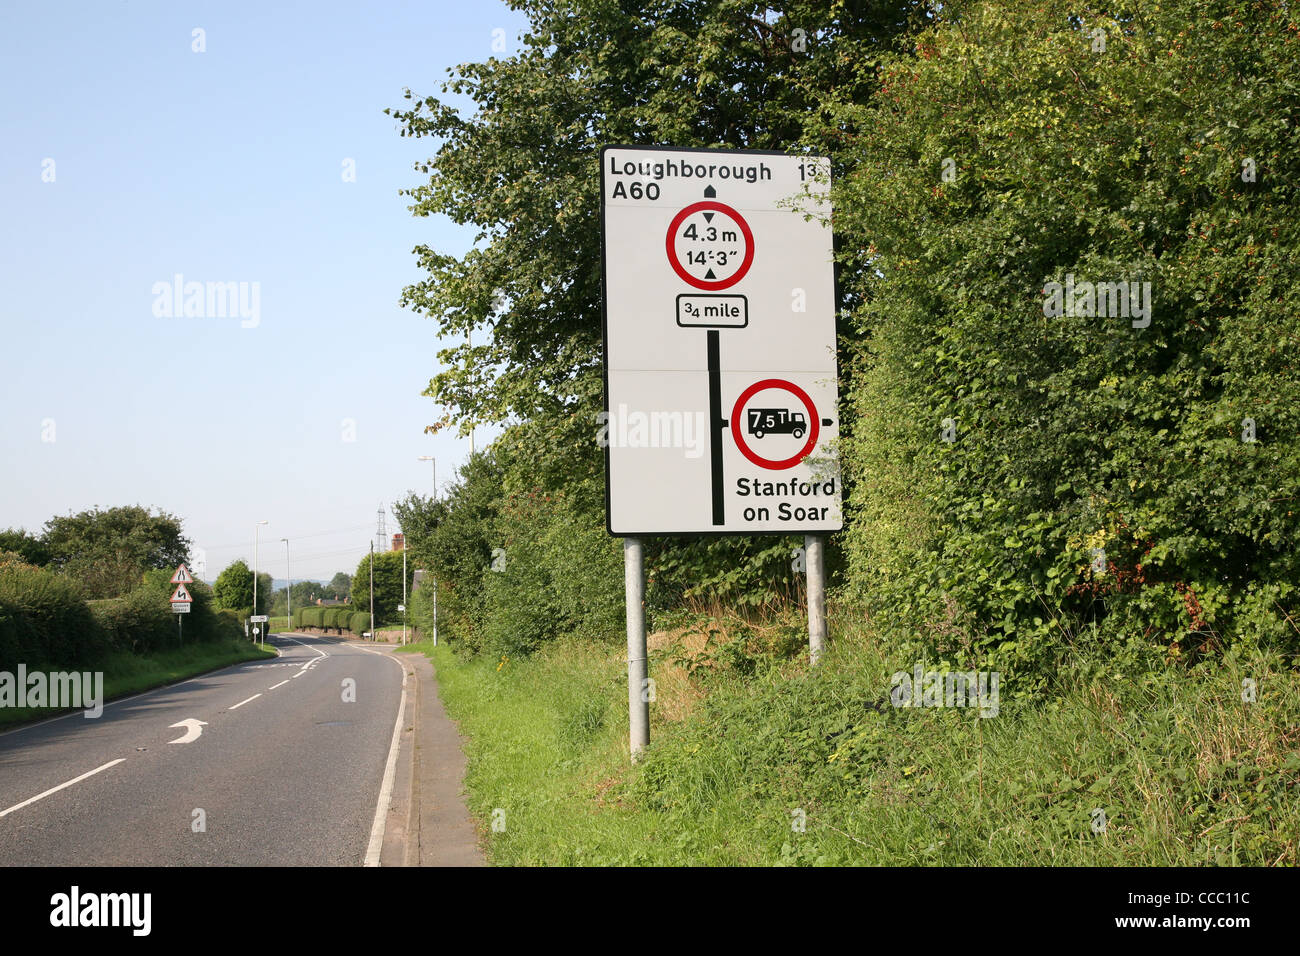 height weight limit sign near loughborough - Stock Image